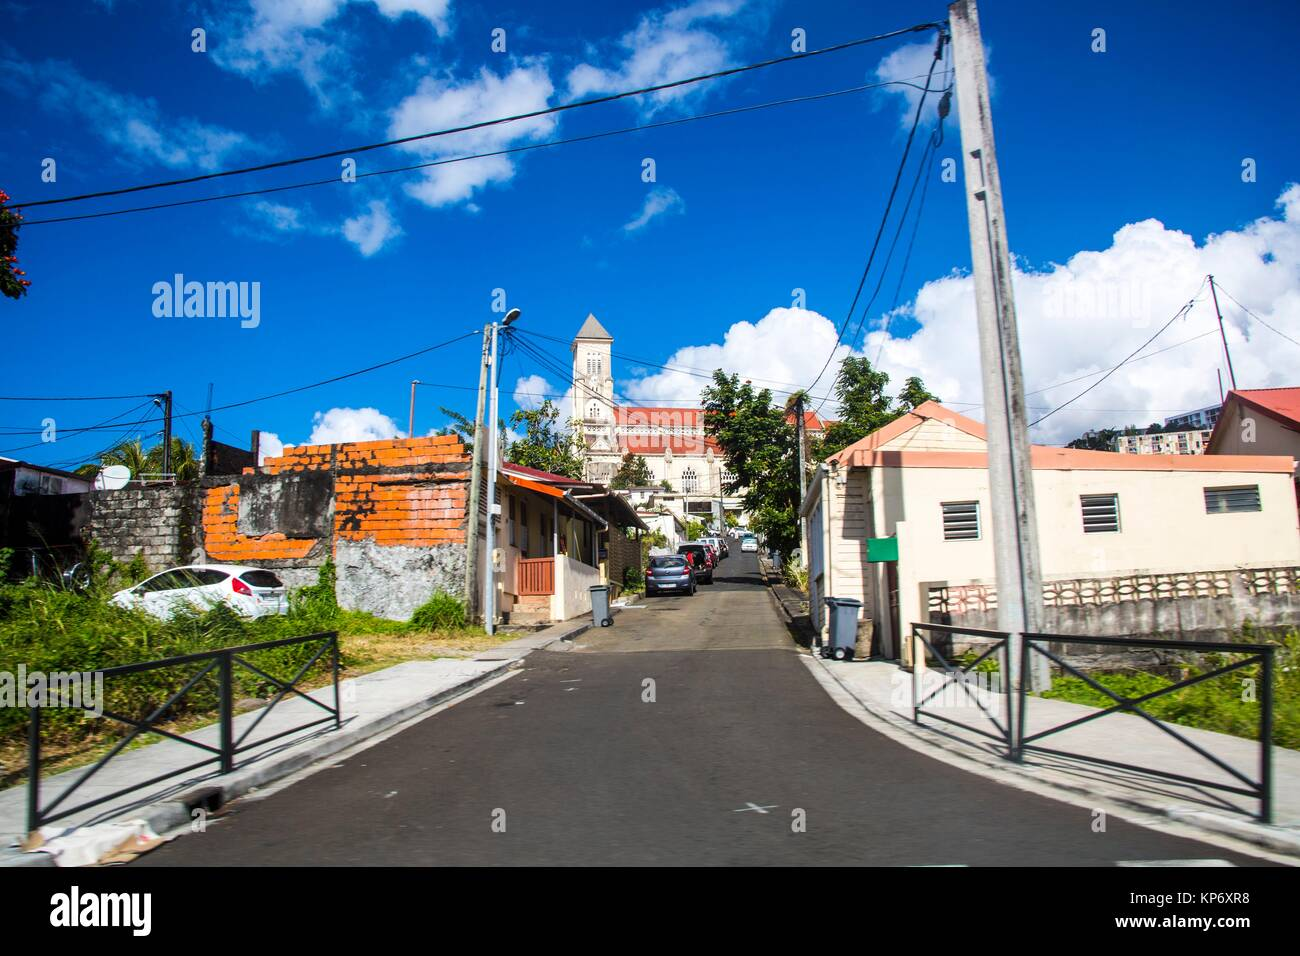 Narrow Streets views of the city of Fort de France, Martinique. - Stock Image